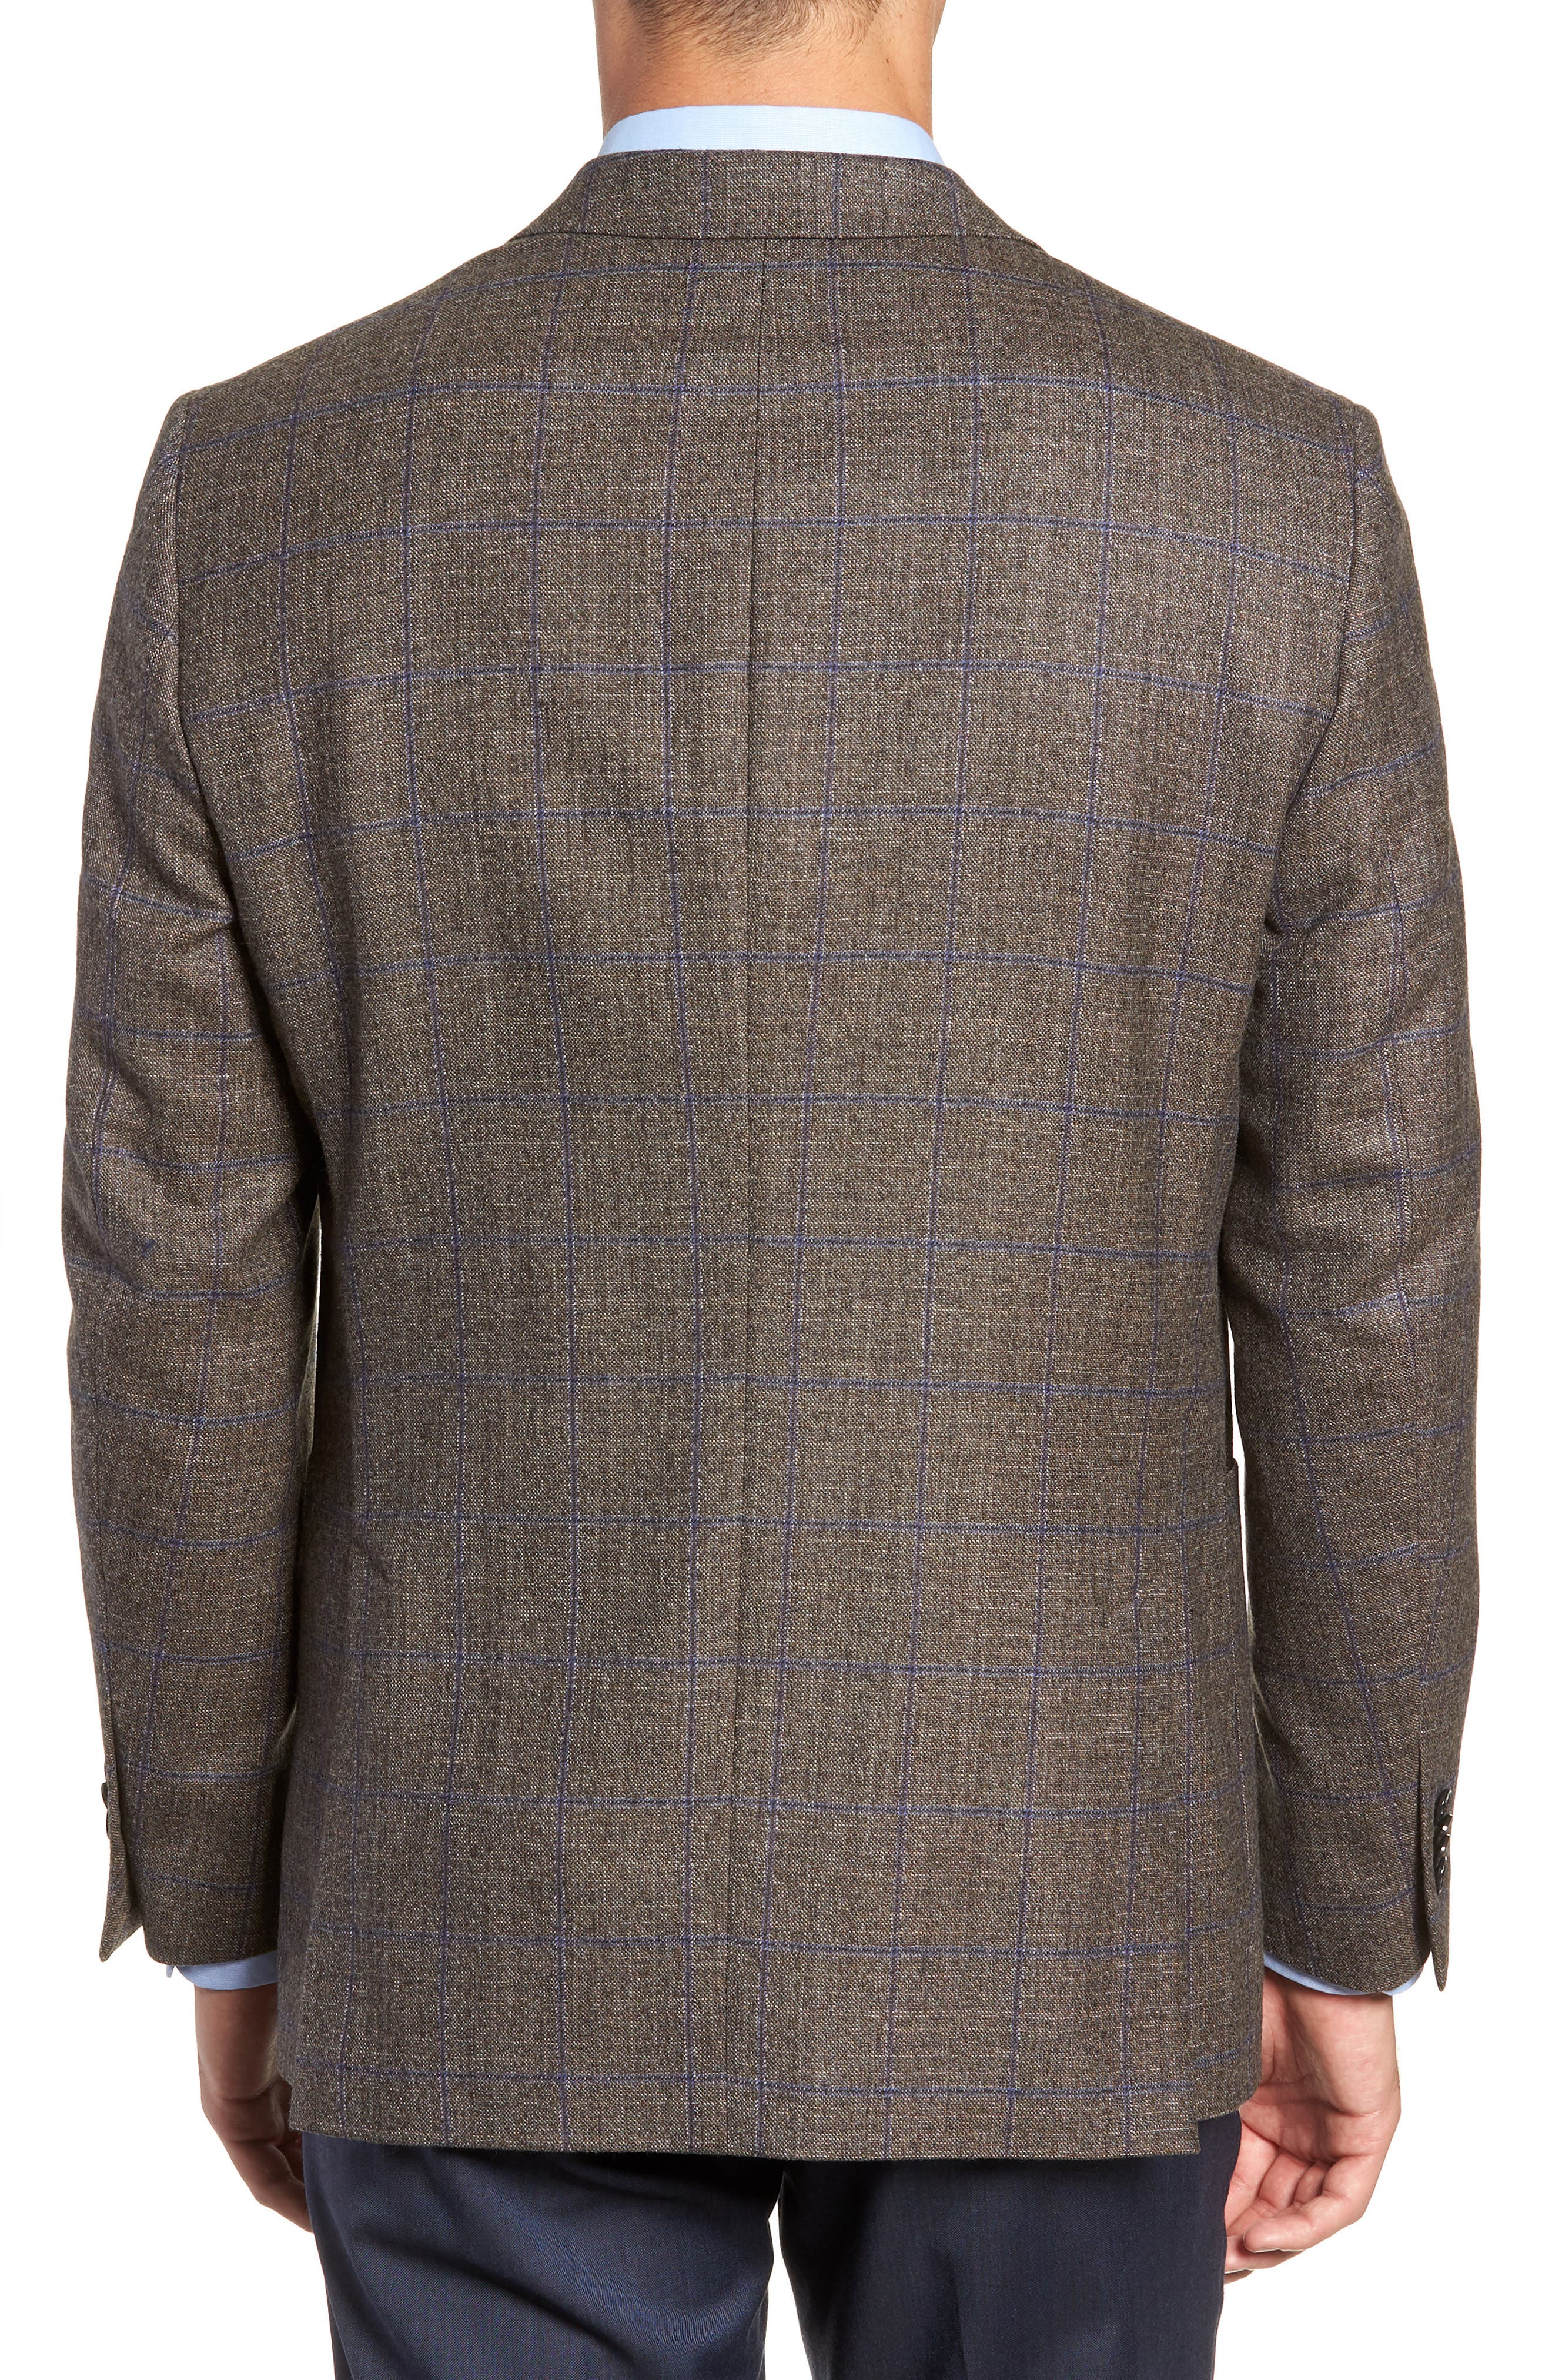 Hyperlight Classic Fit Wool Sport Coat,                             Alternate thumbnail 2, color,                             BROWN